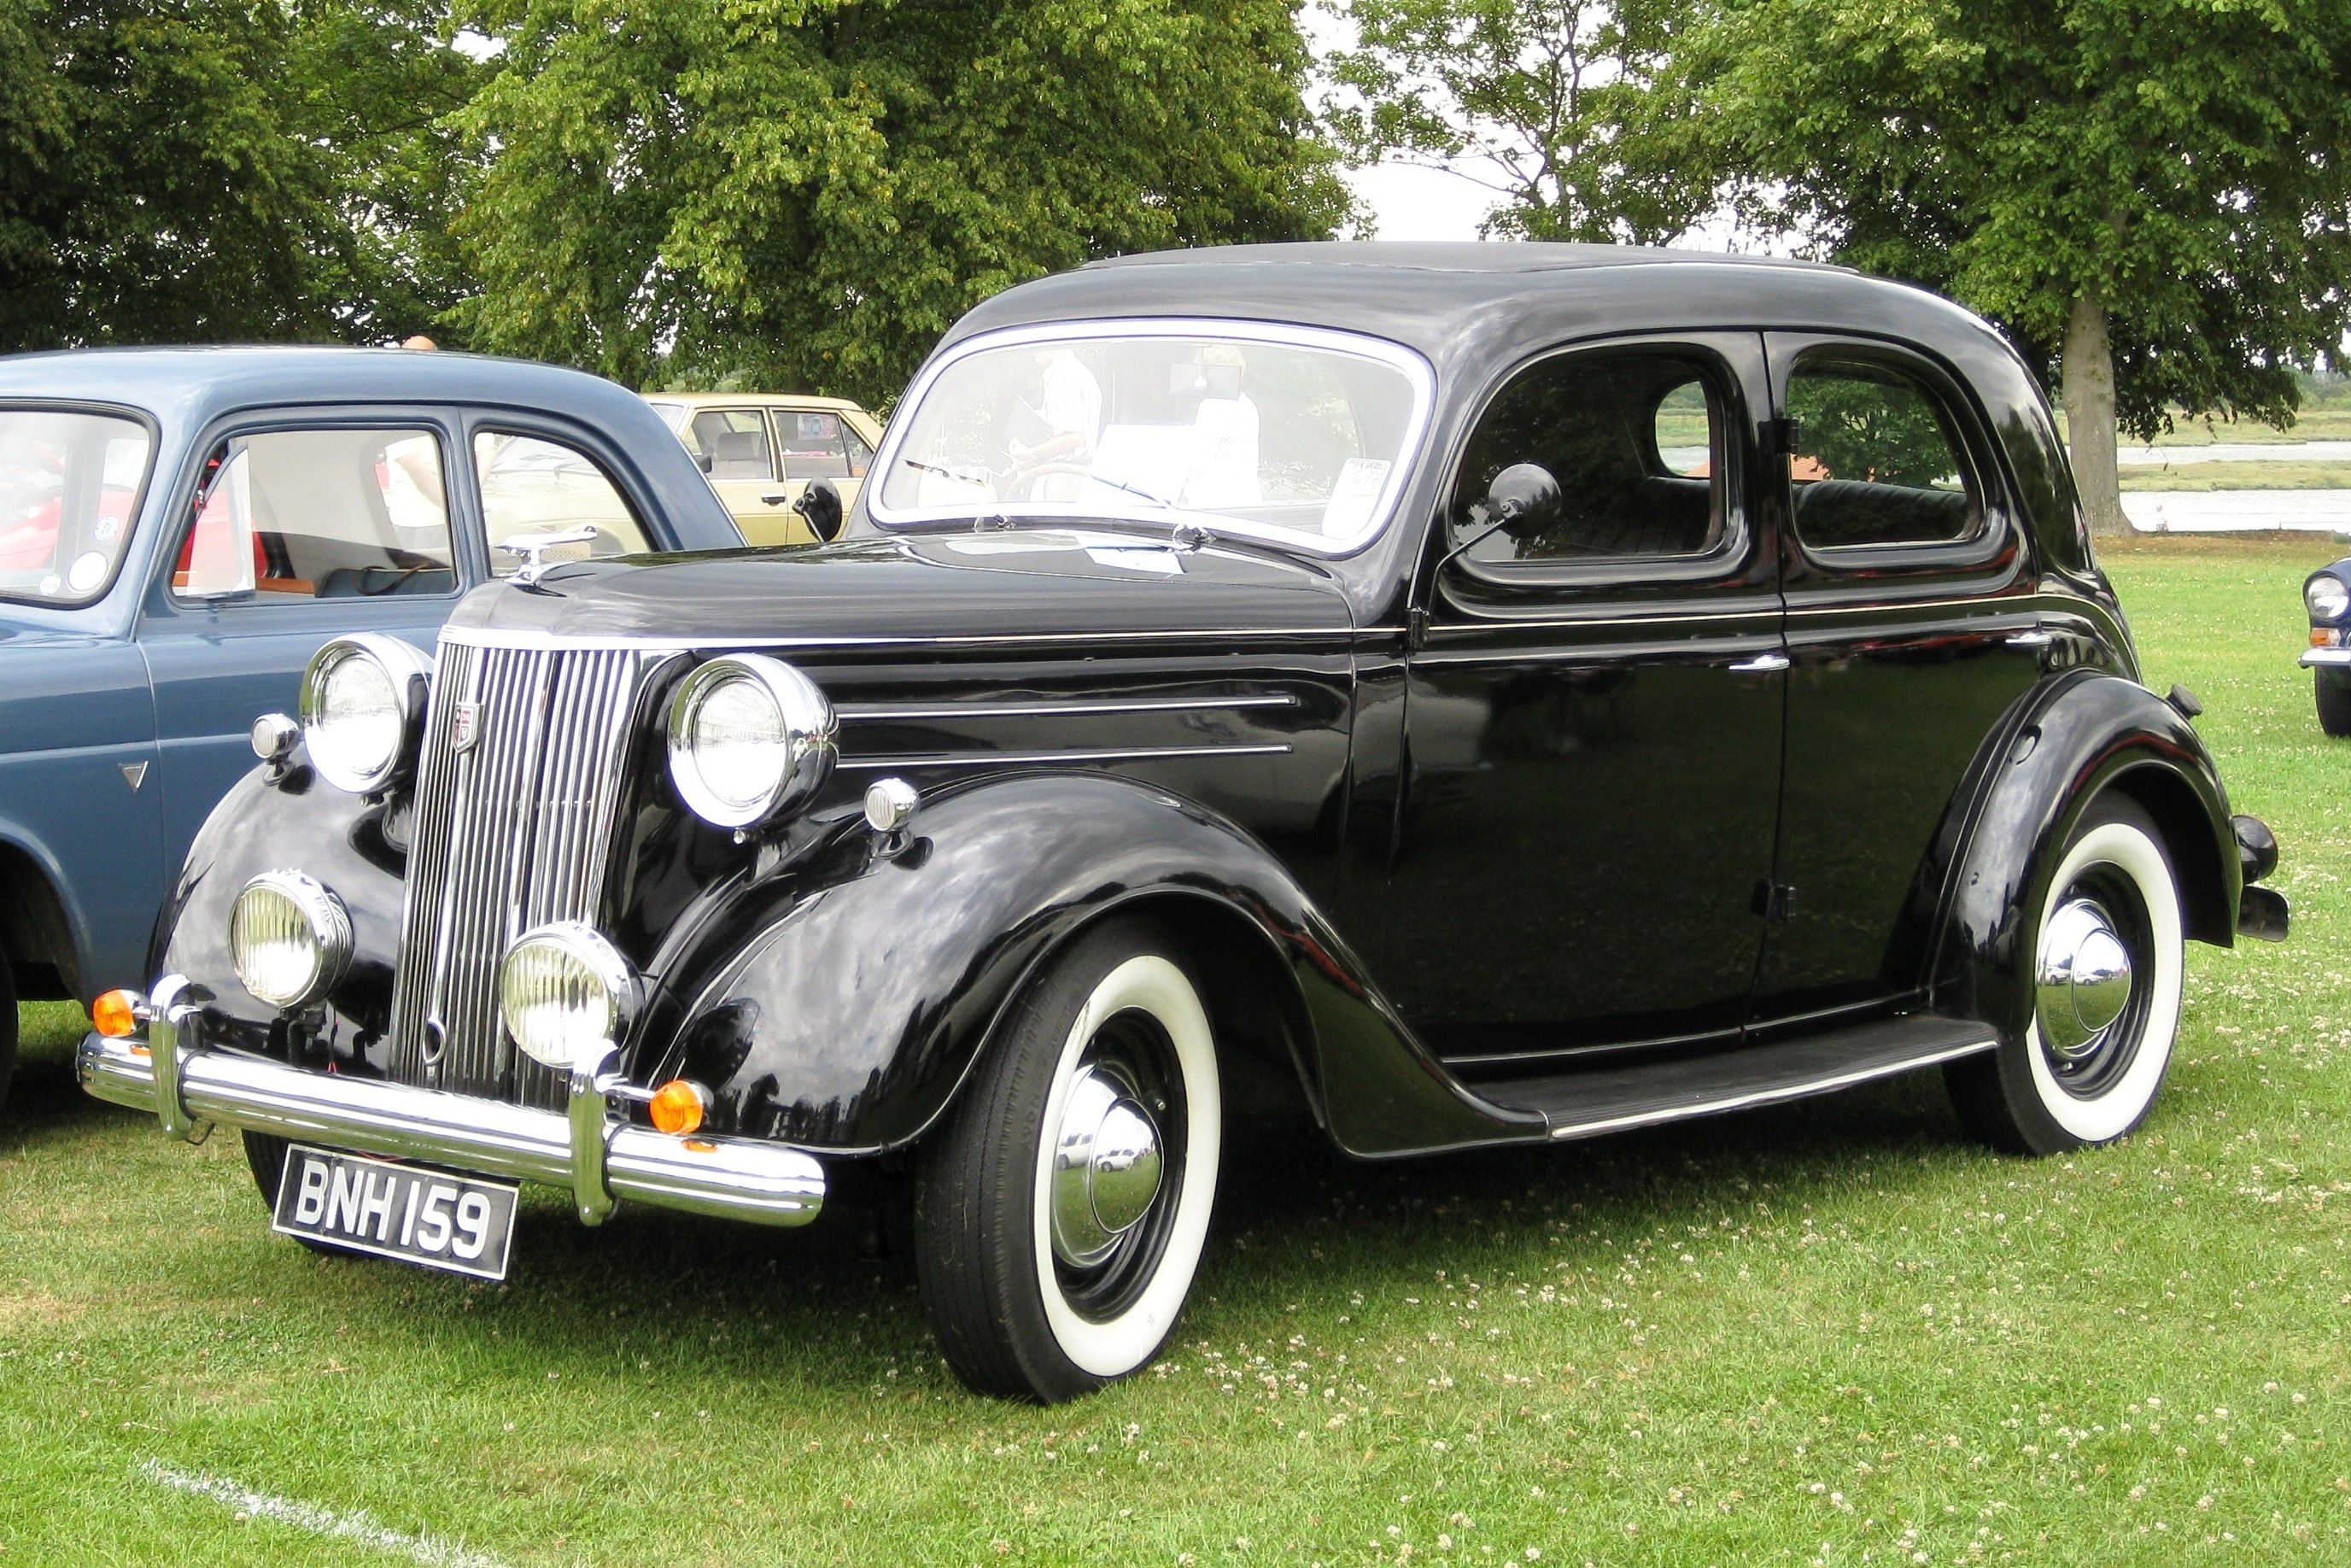 1947 Ford V8 Pilot   Automóviles   Pinterest   Ford and Cars